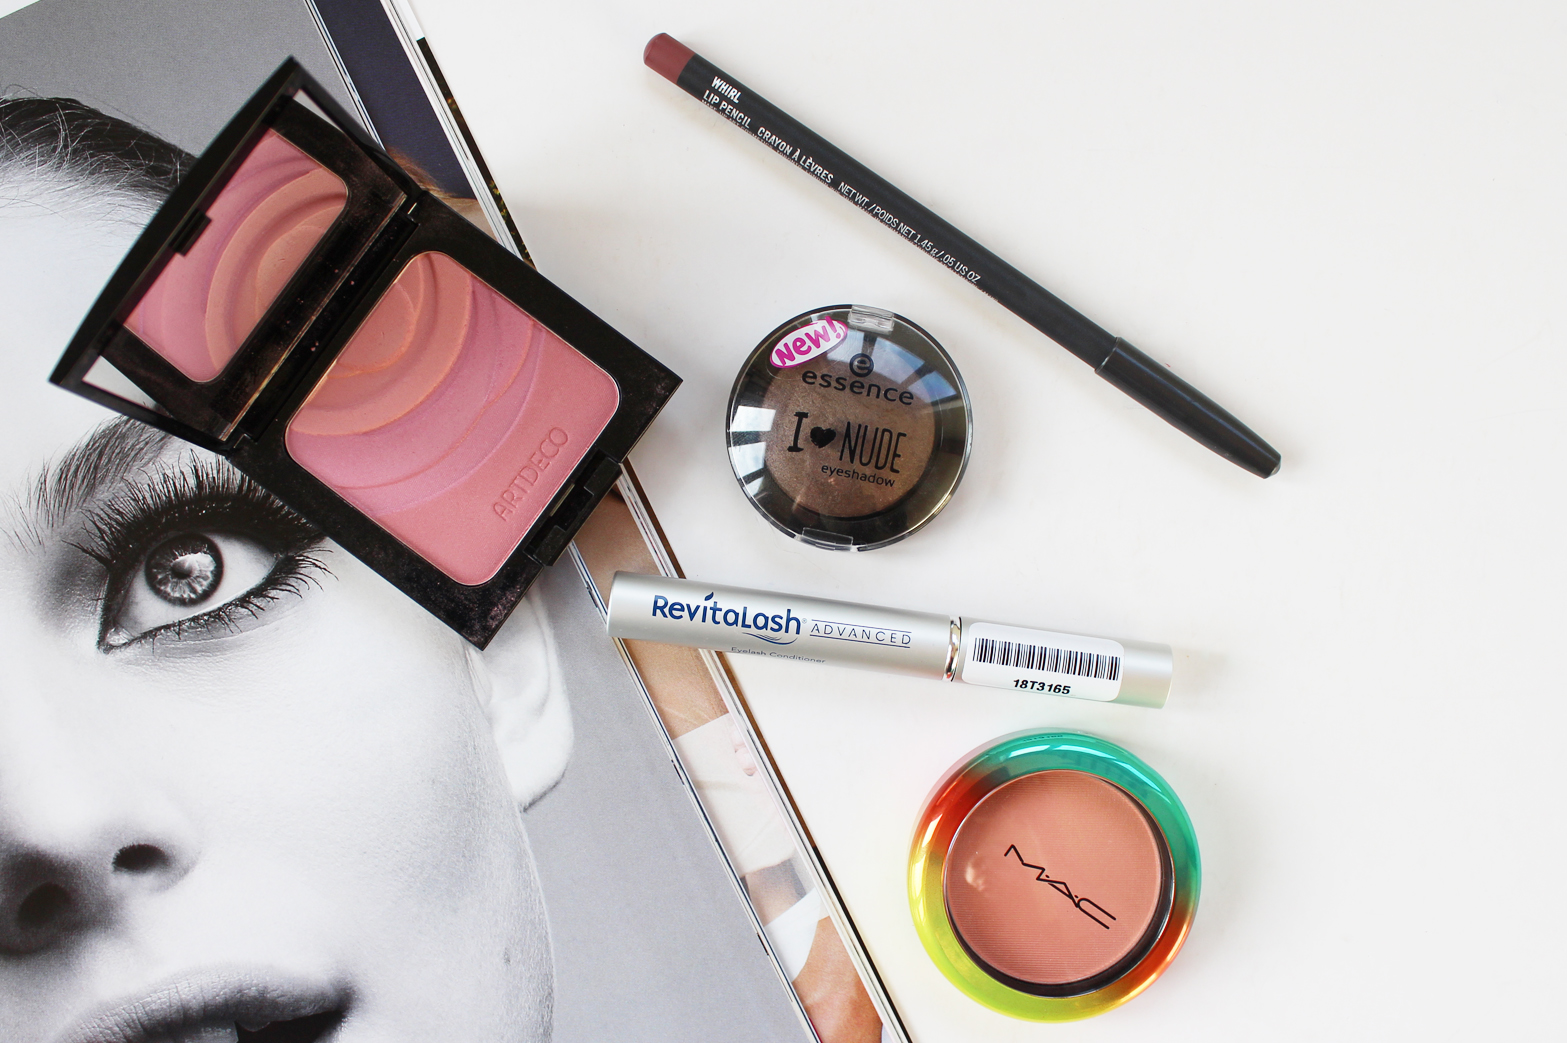 MOST LOVED | June '15 - ArtDeco, Essence, MAC, + Revitalash - CassandraMyee